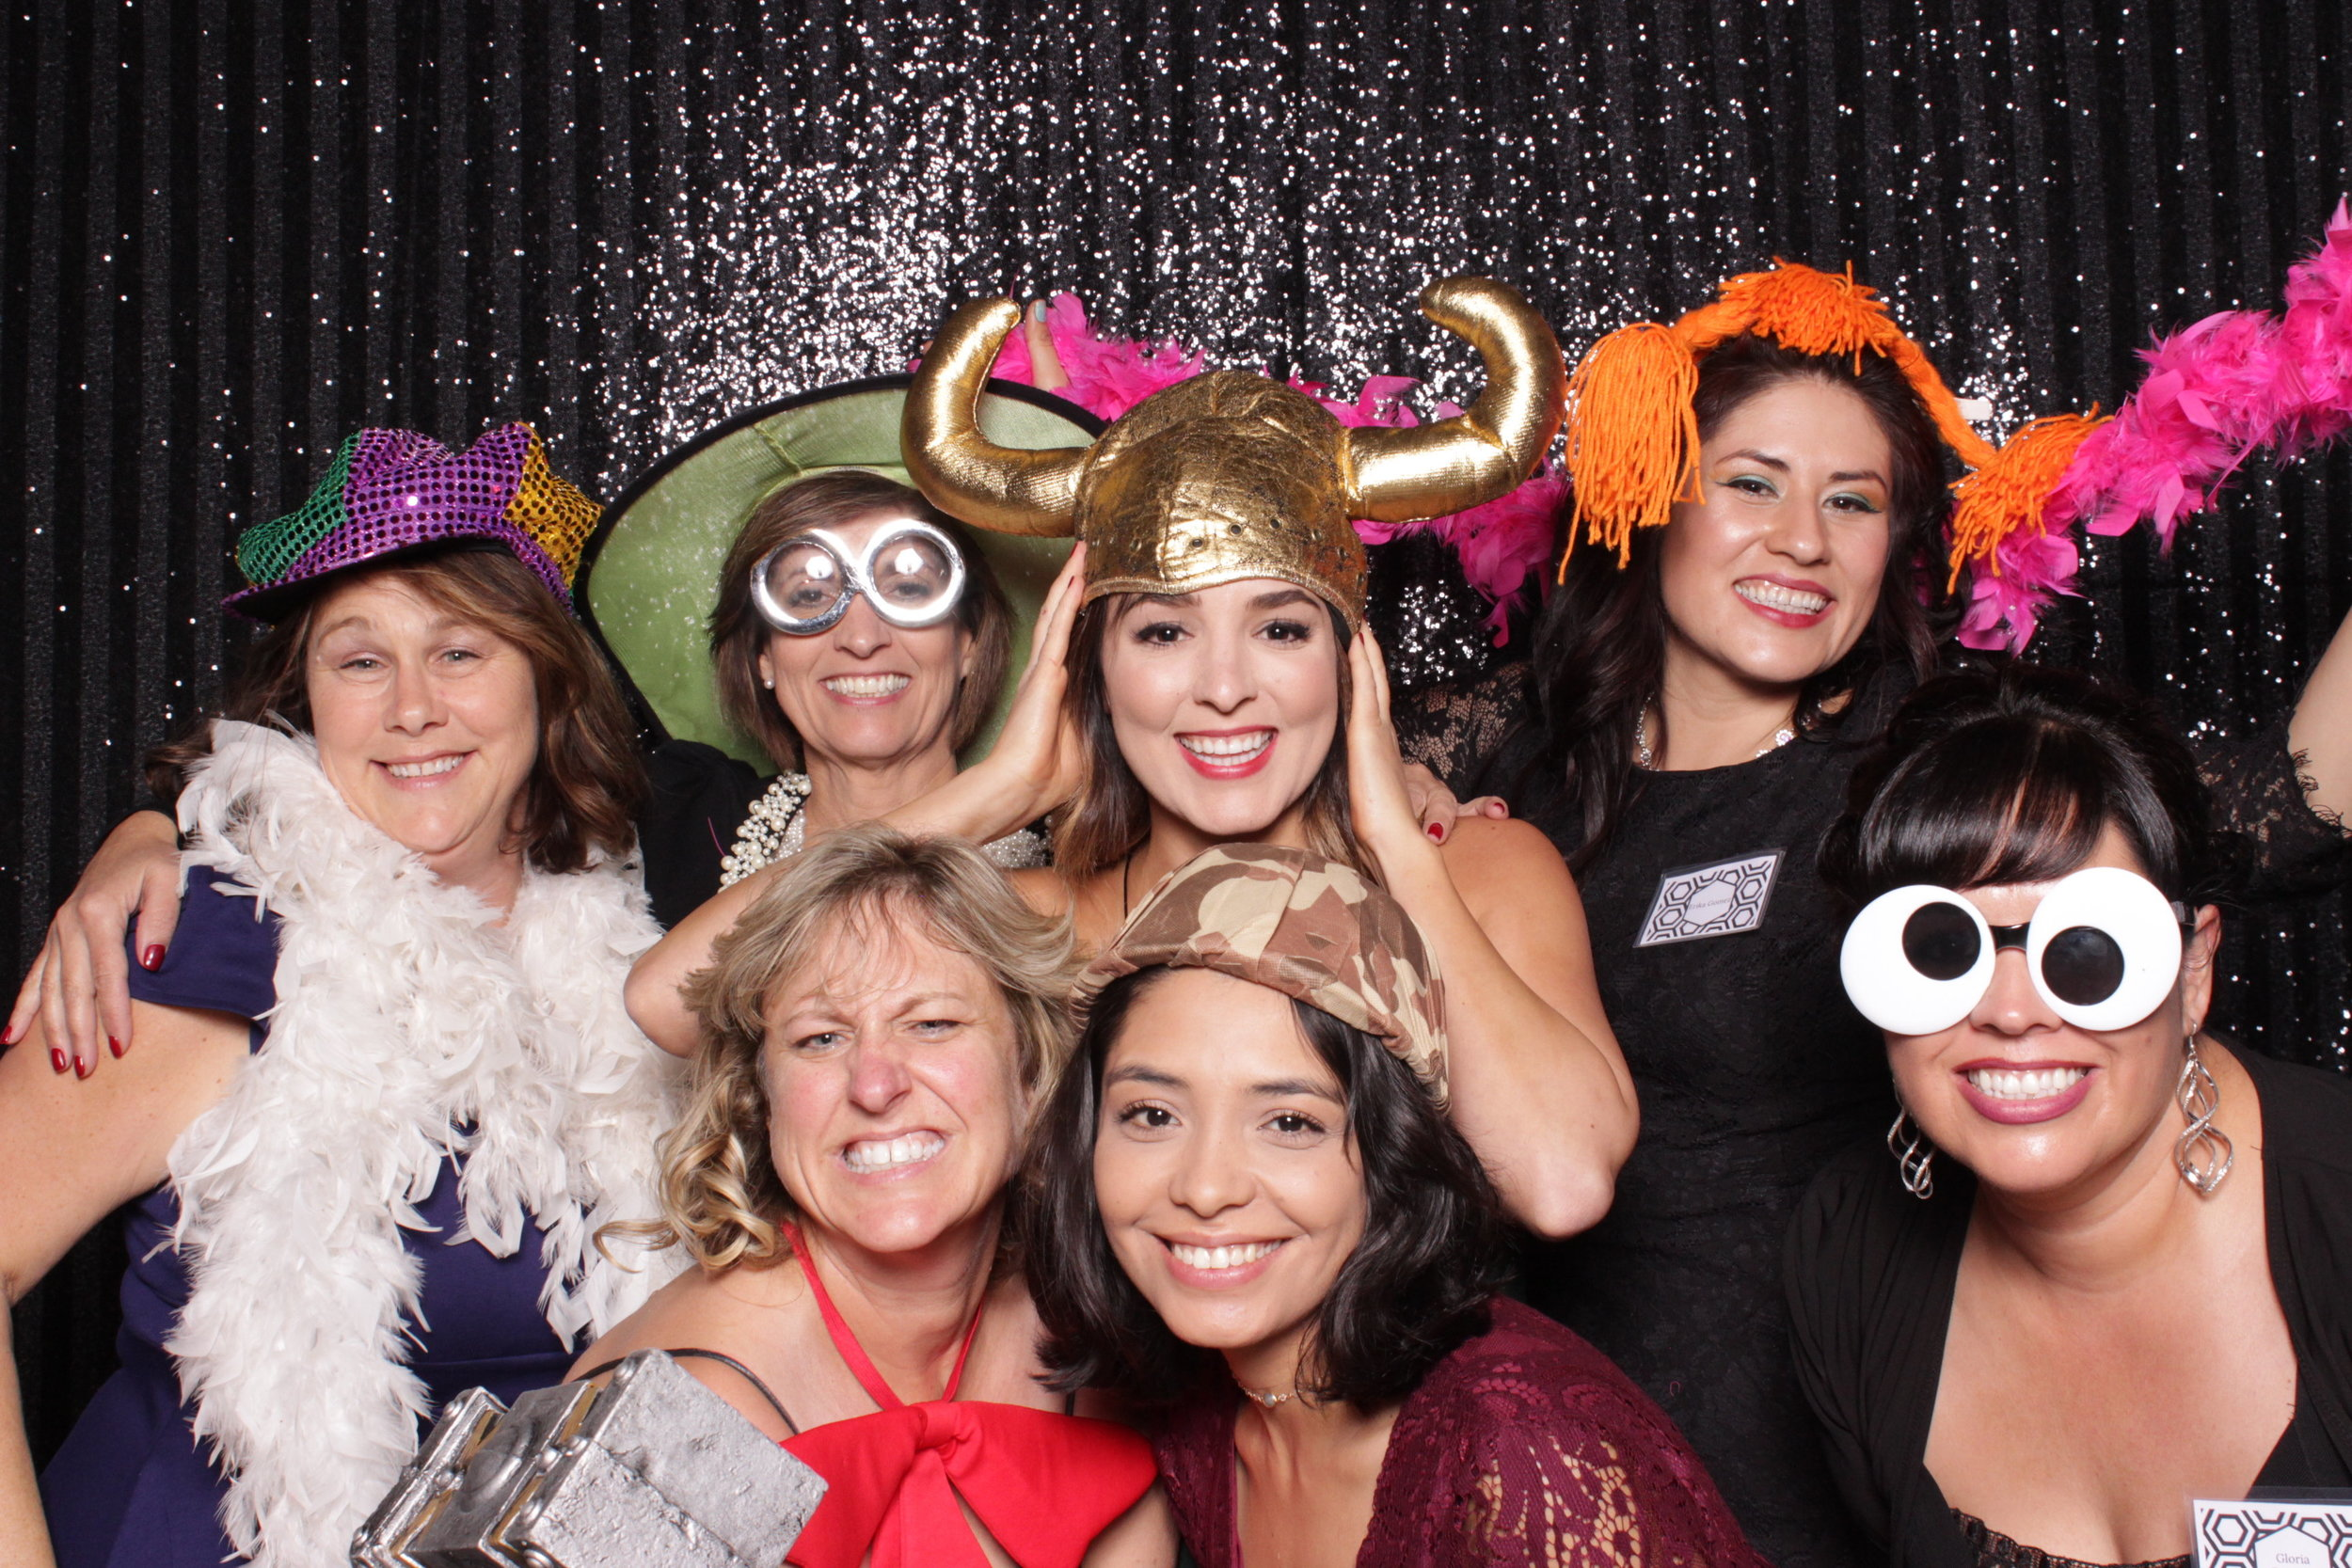 Chico-photo-booth-rental-fast-and-easy